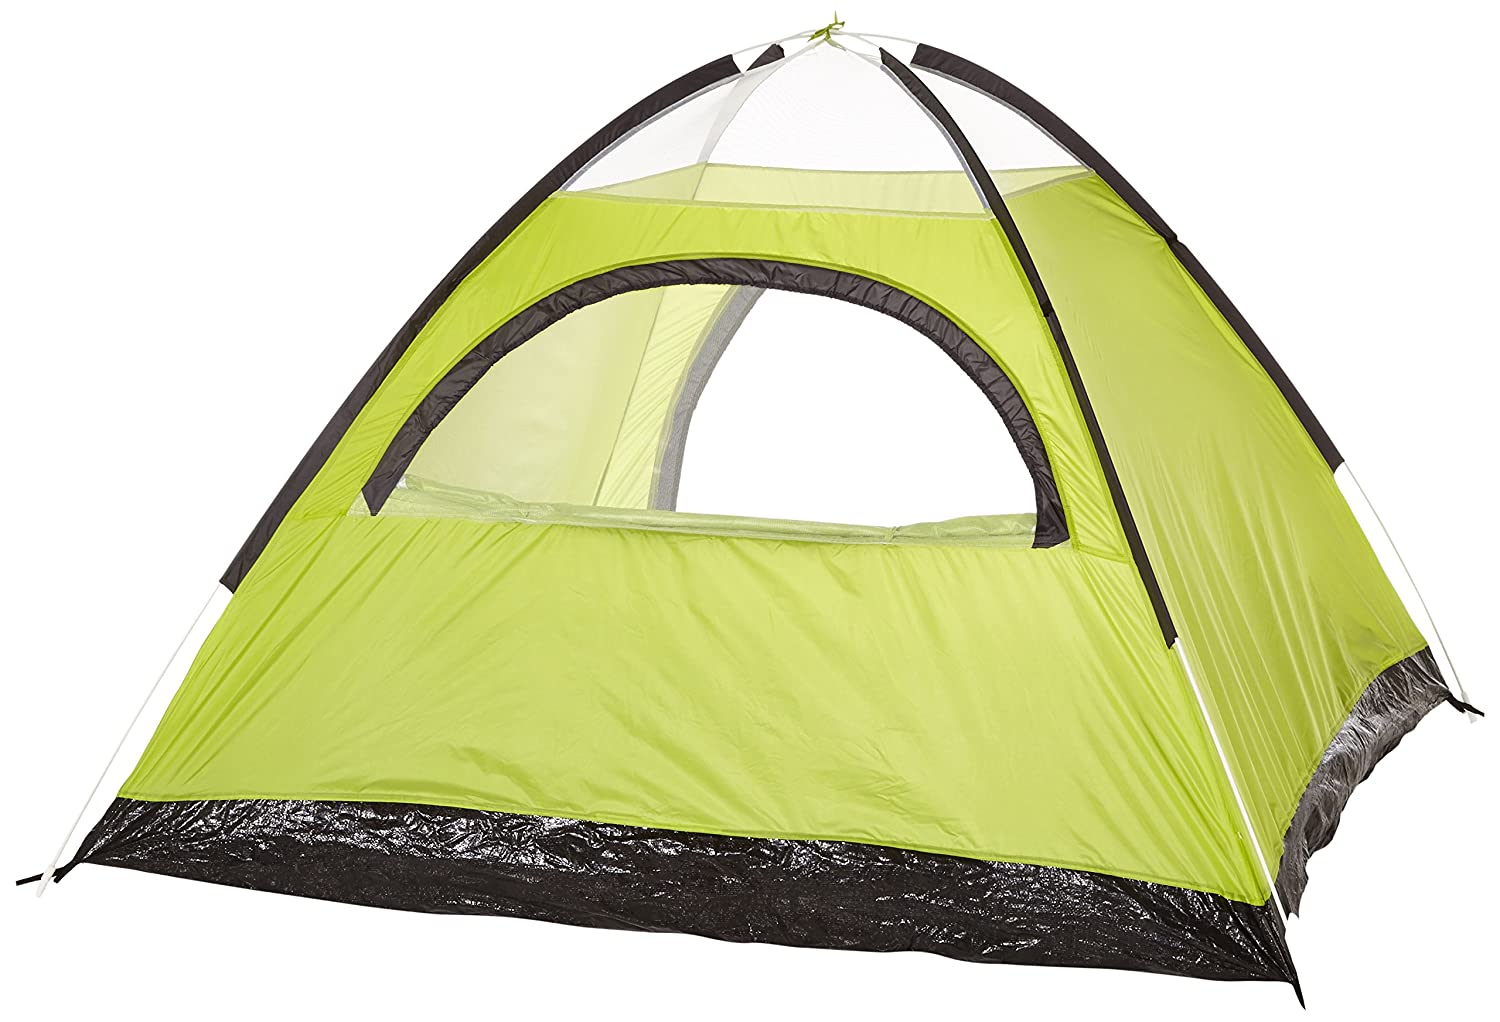 Yellowstone Easy Pitch Dome Tent - Green Amazon.co.uk Sports u0026 Outdoors  sc 1 st  Amazon UK & Yellowstone Easy Pitch Dome Tent - Green: Amazon.co.uk: Sports ...